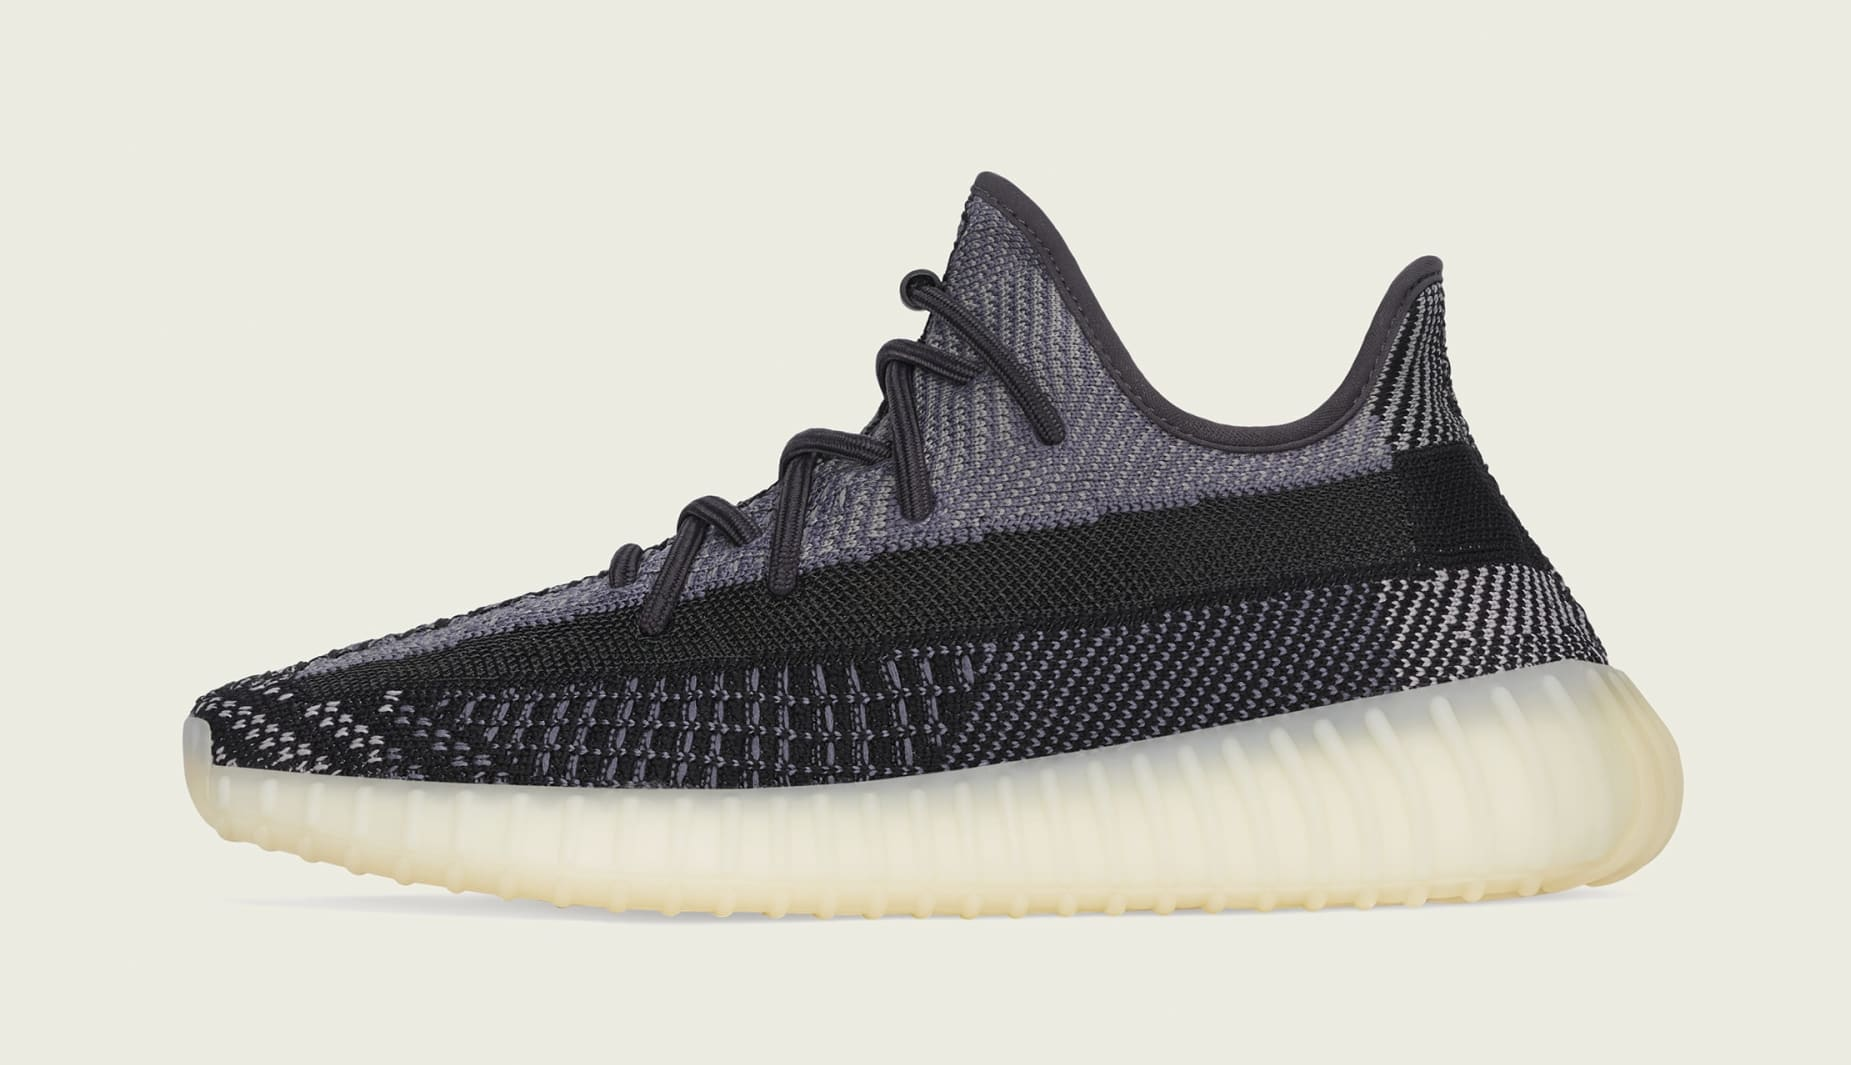 Adidas Yeezy boost 350 V2 'Carbon' FZ5000 Lateral